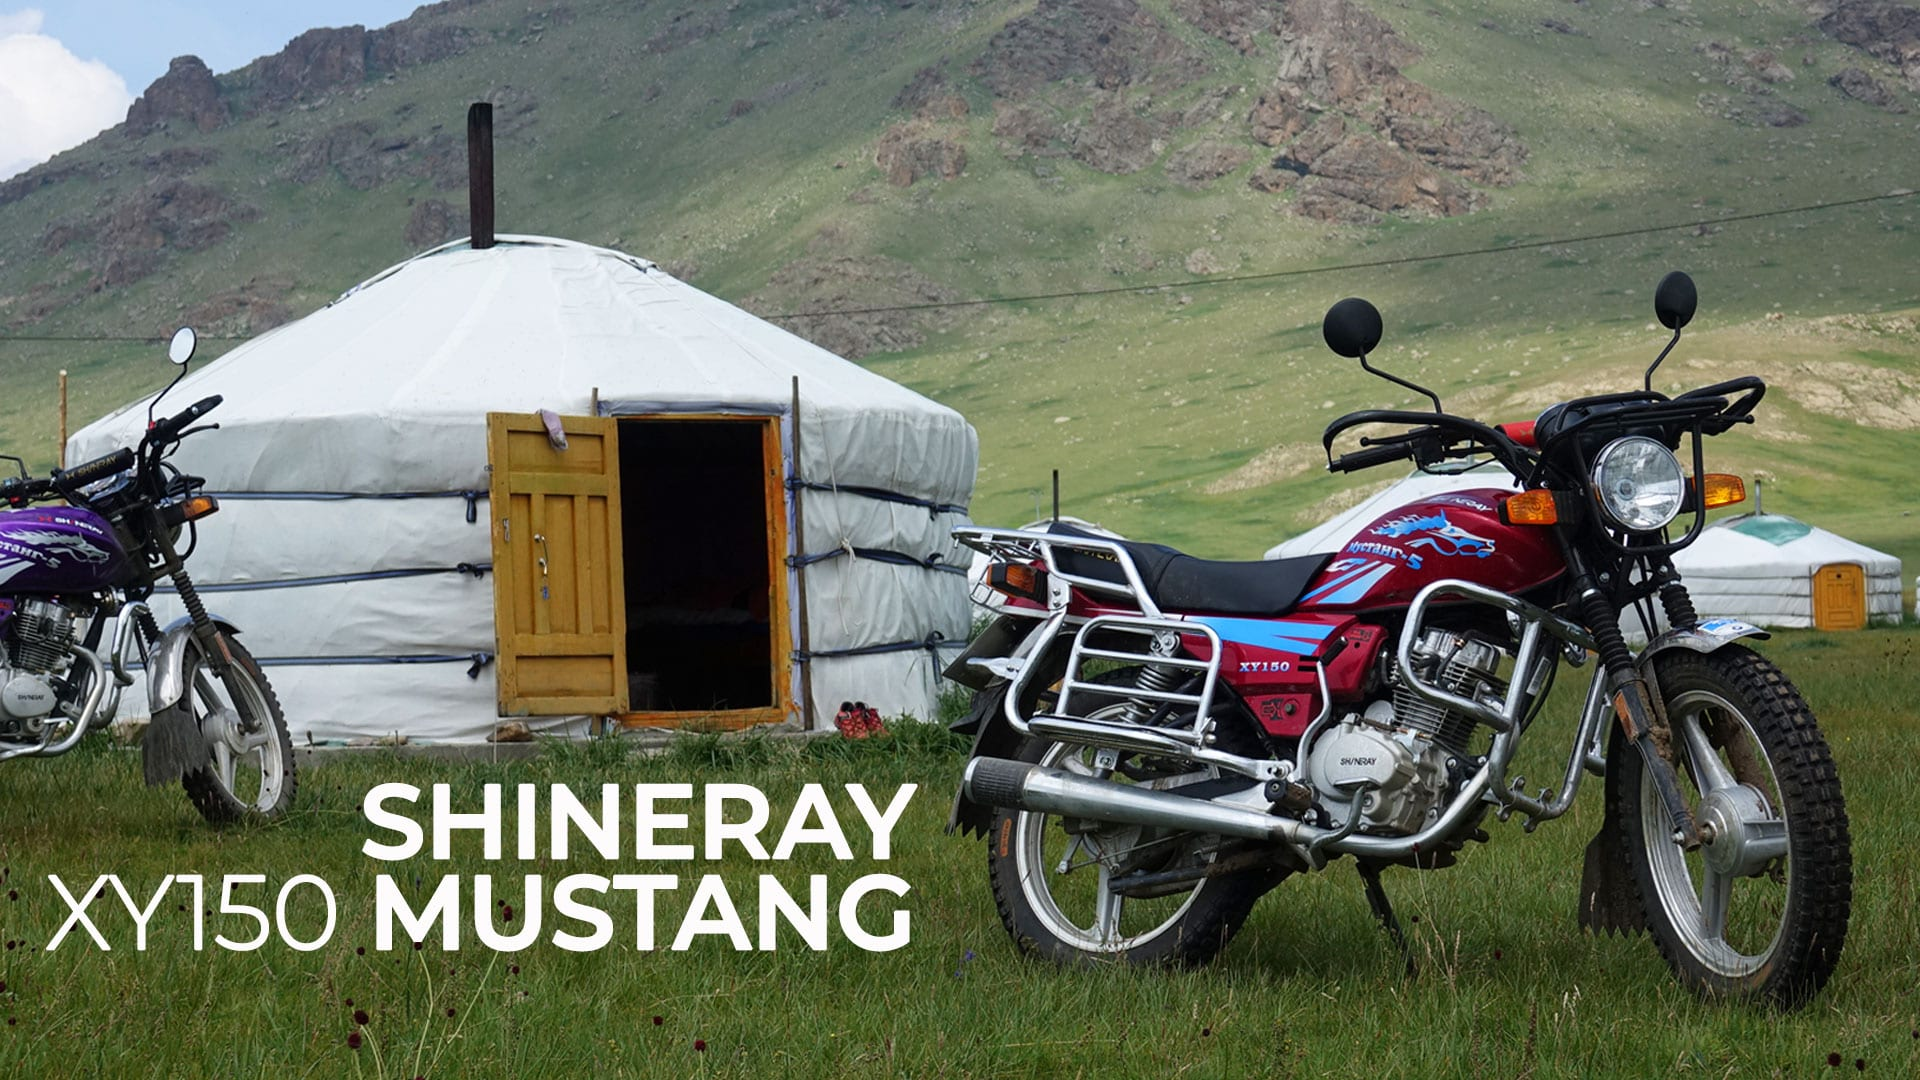 shineray mustang la moto in mongolia